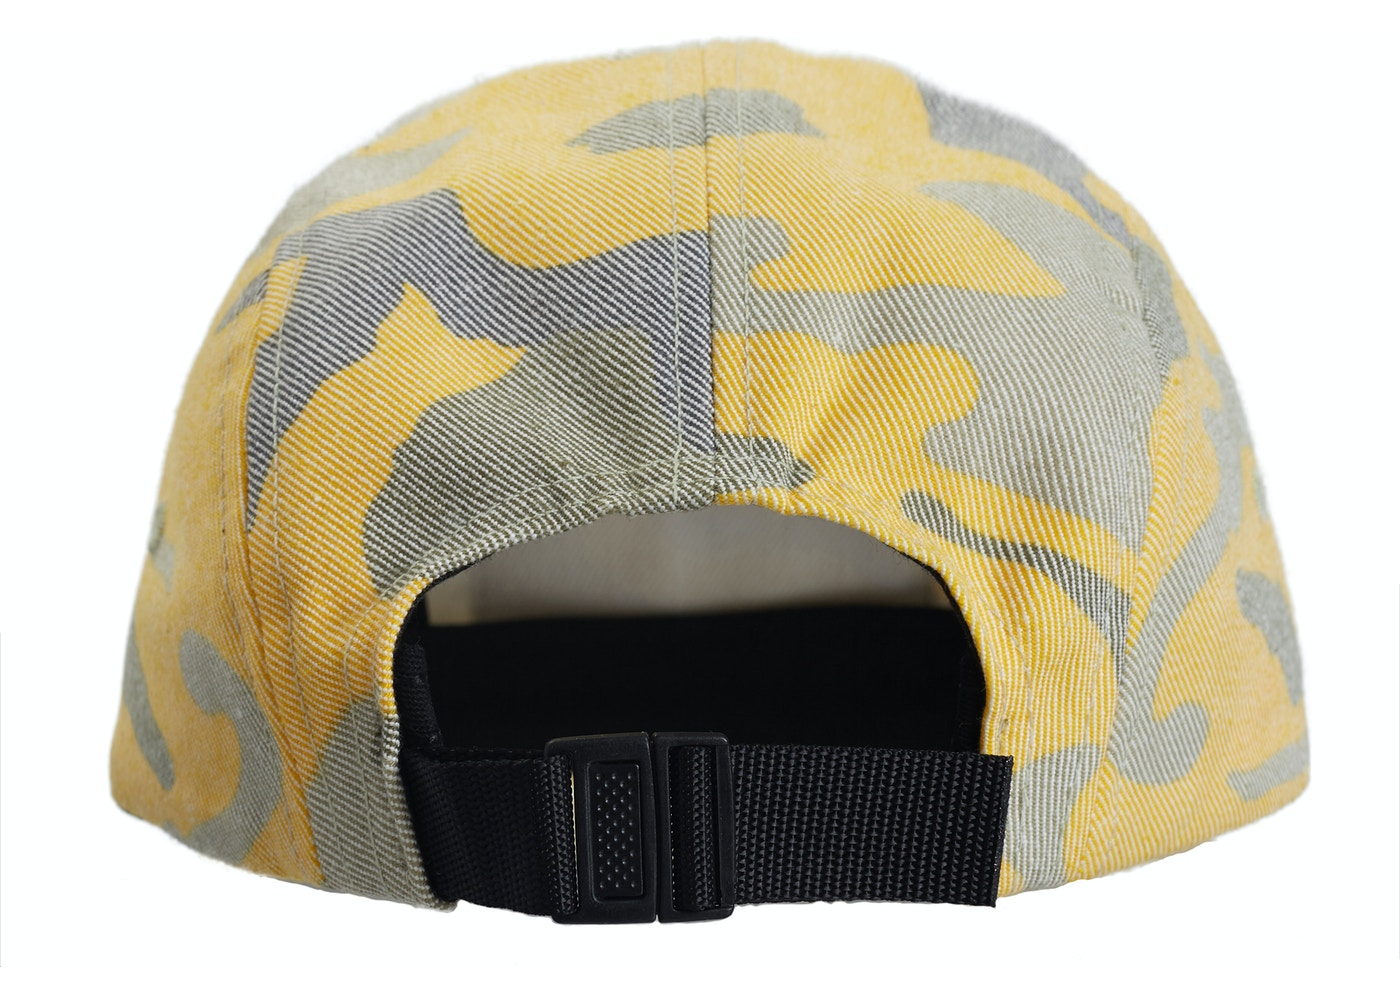 76ad0bad822 Supreme Headwear - Buy   Sell Streetwear